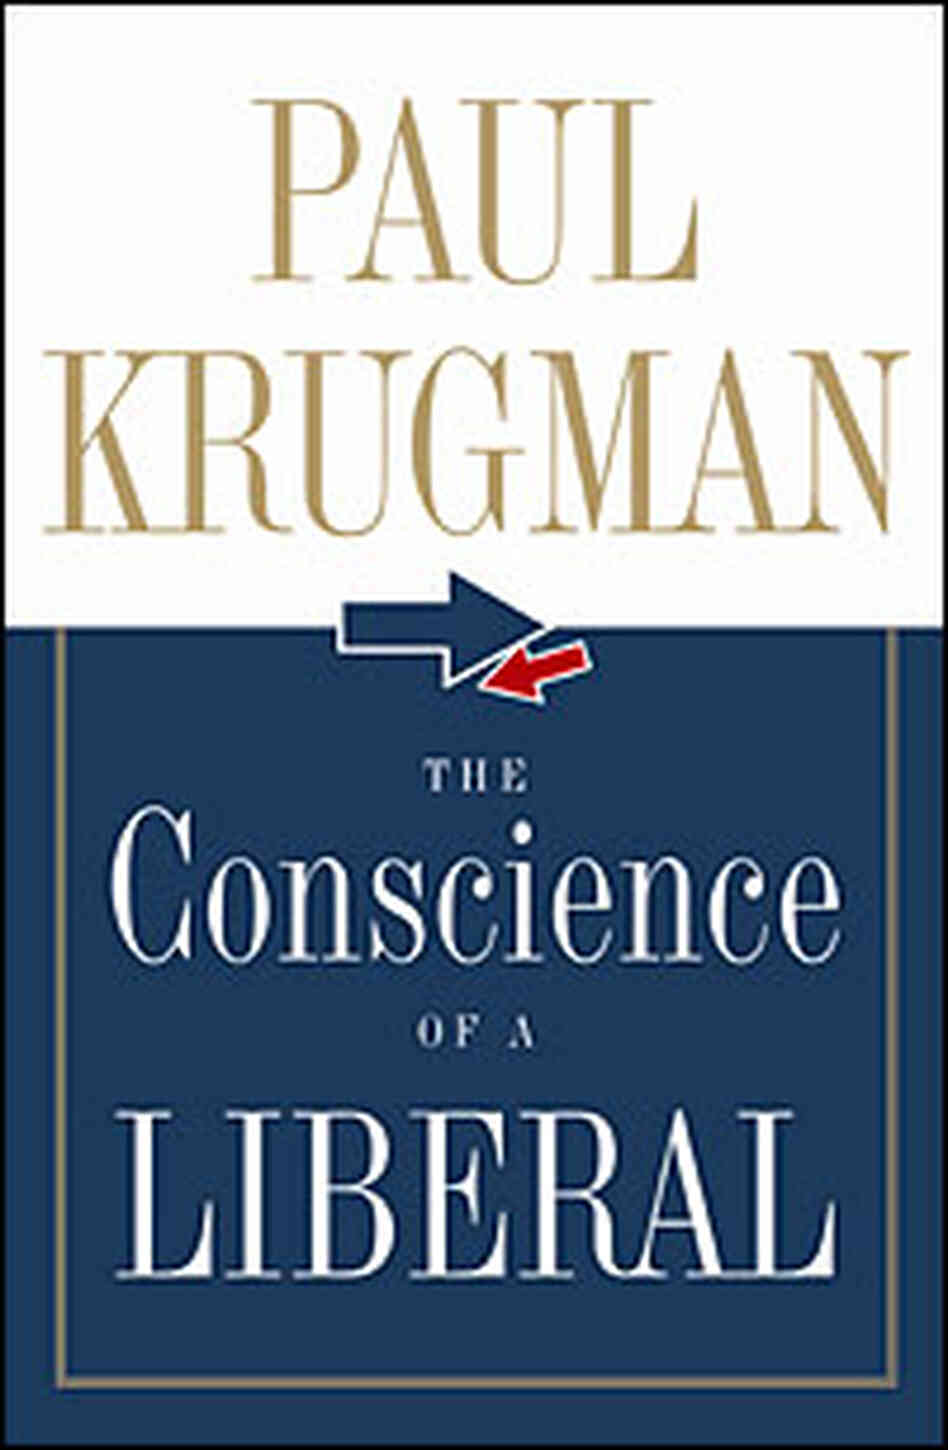 Cover 'The Conscience of a Liberal' by Paul Krugman